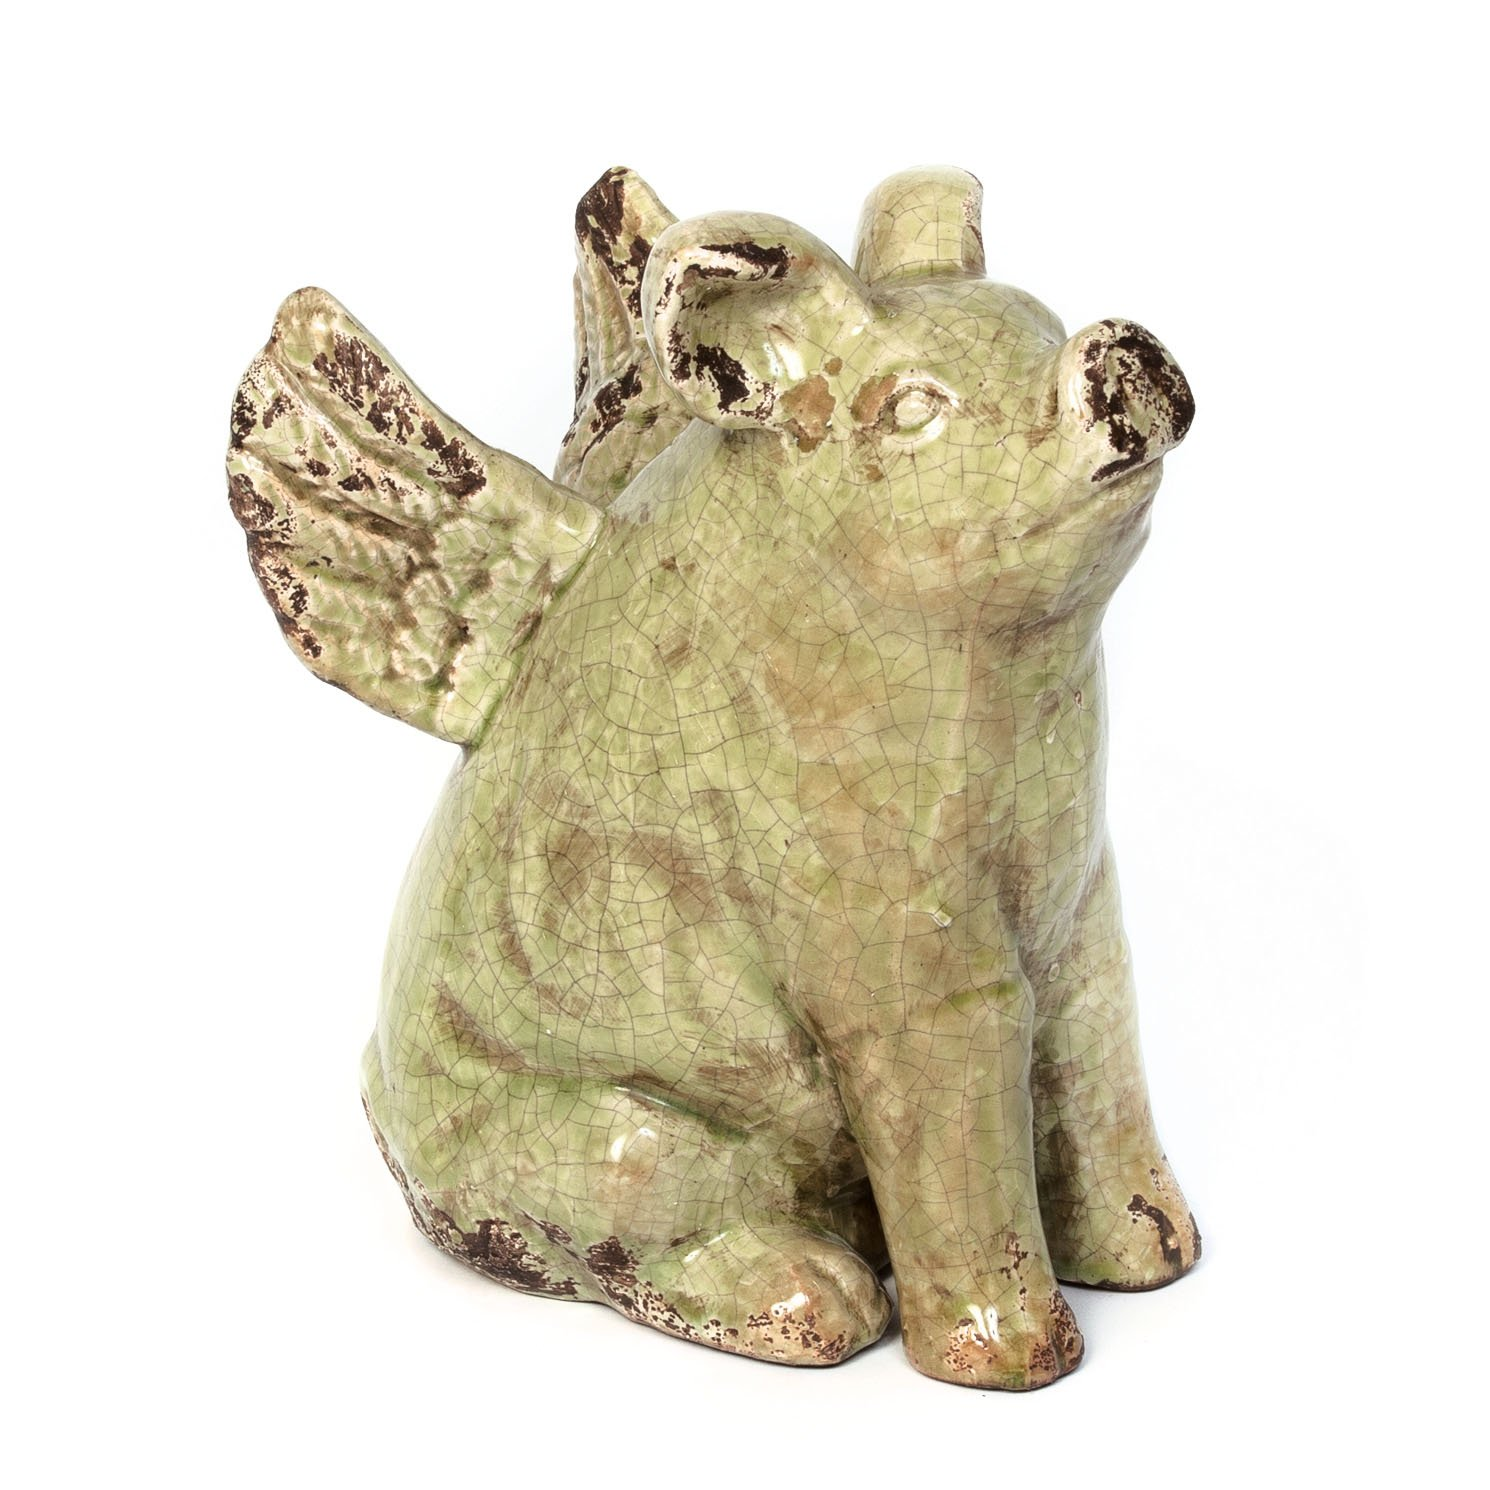 Skalny 82163GRN Green Ceramic Pig w Wings Statue Figure, 10.5 x 5.5 x 8.25 ,